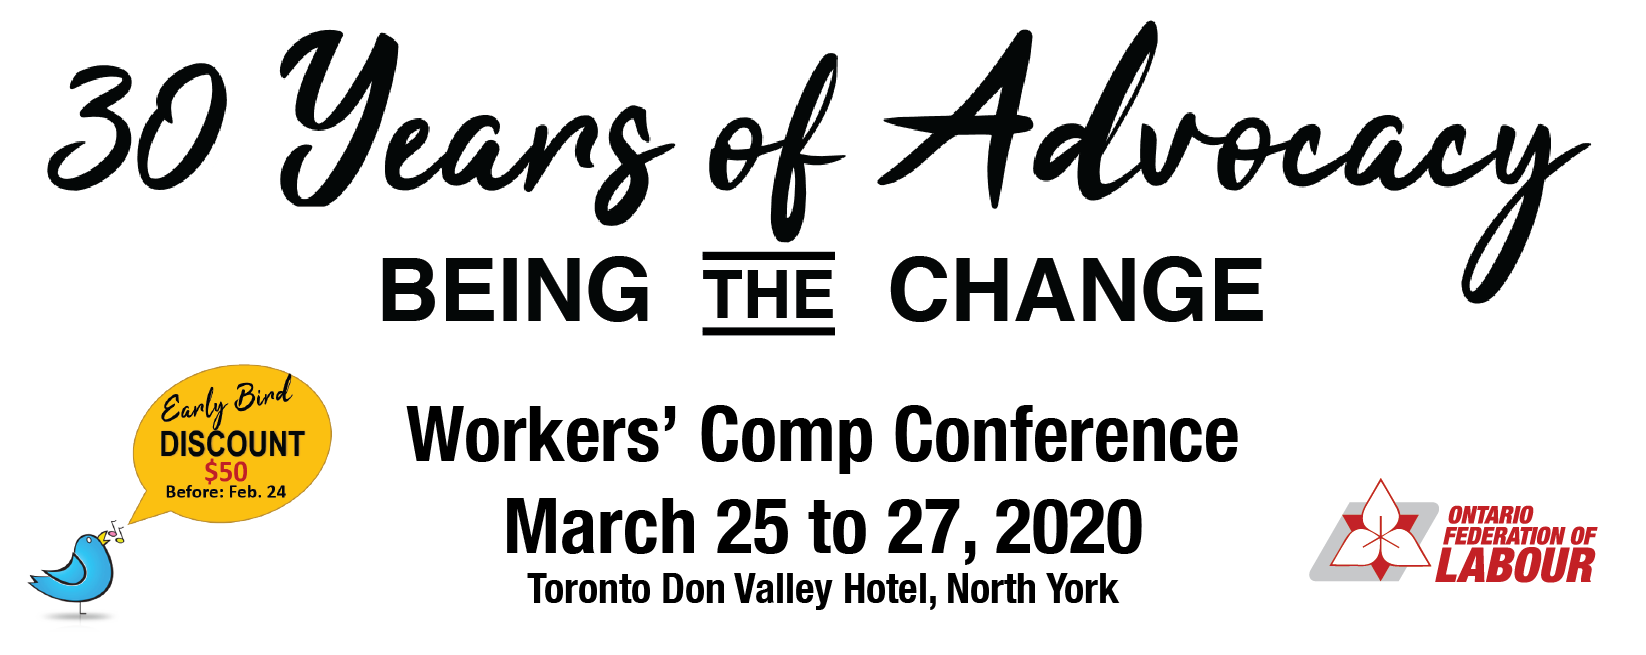 30 Years of Advocacy: Being the Change